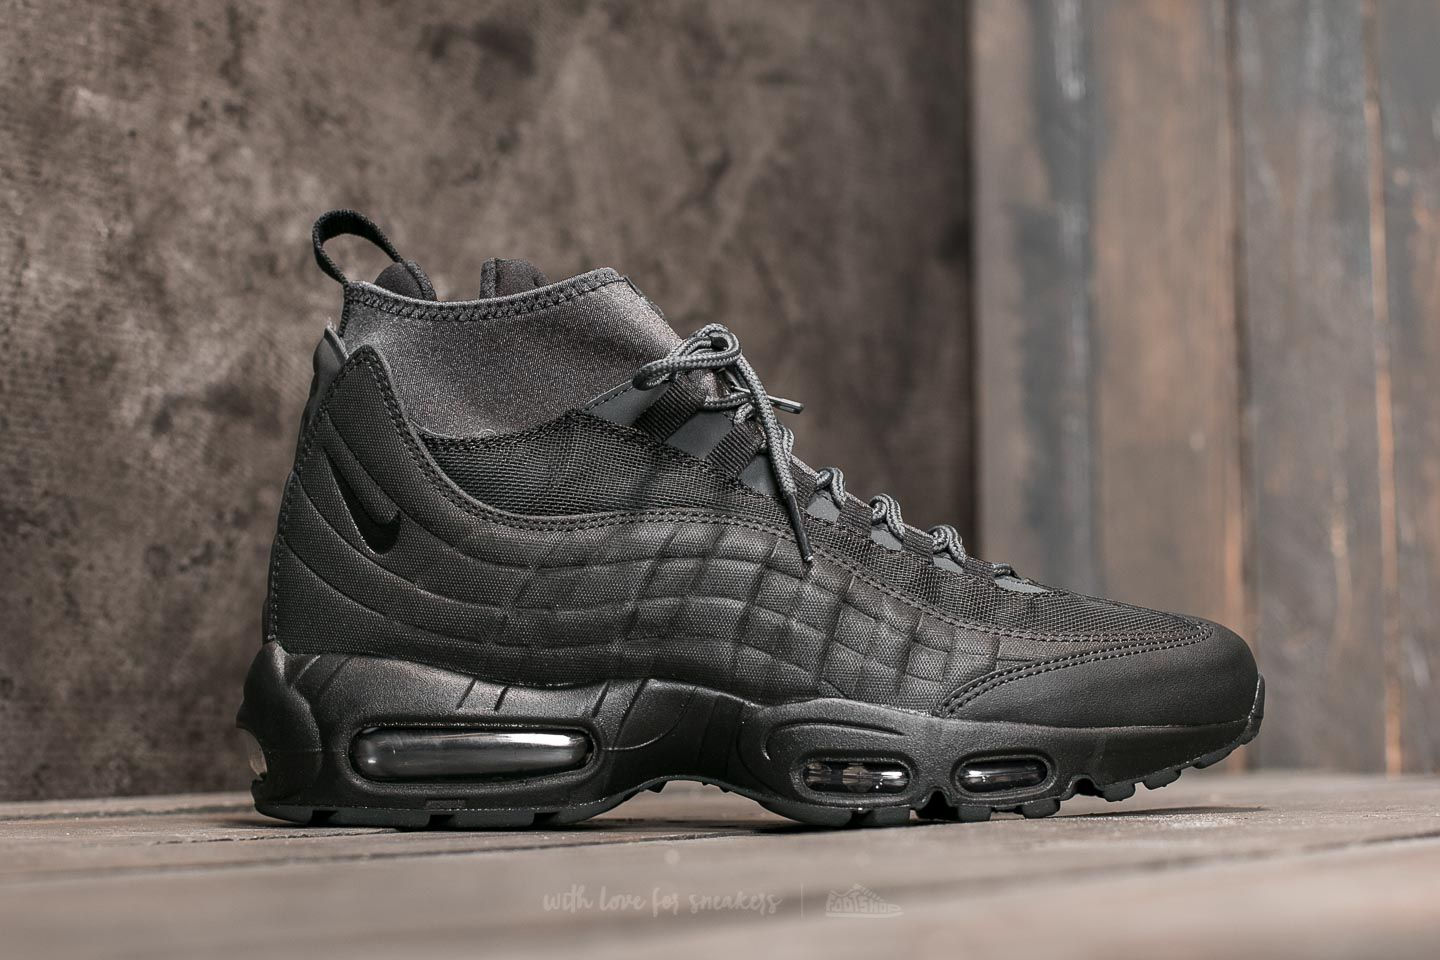 Nike Air Max 95 Sneakerboot Black Black Anthracite White | Footshop